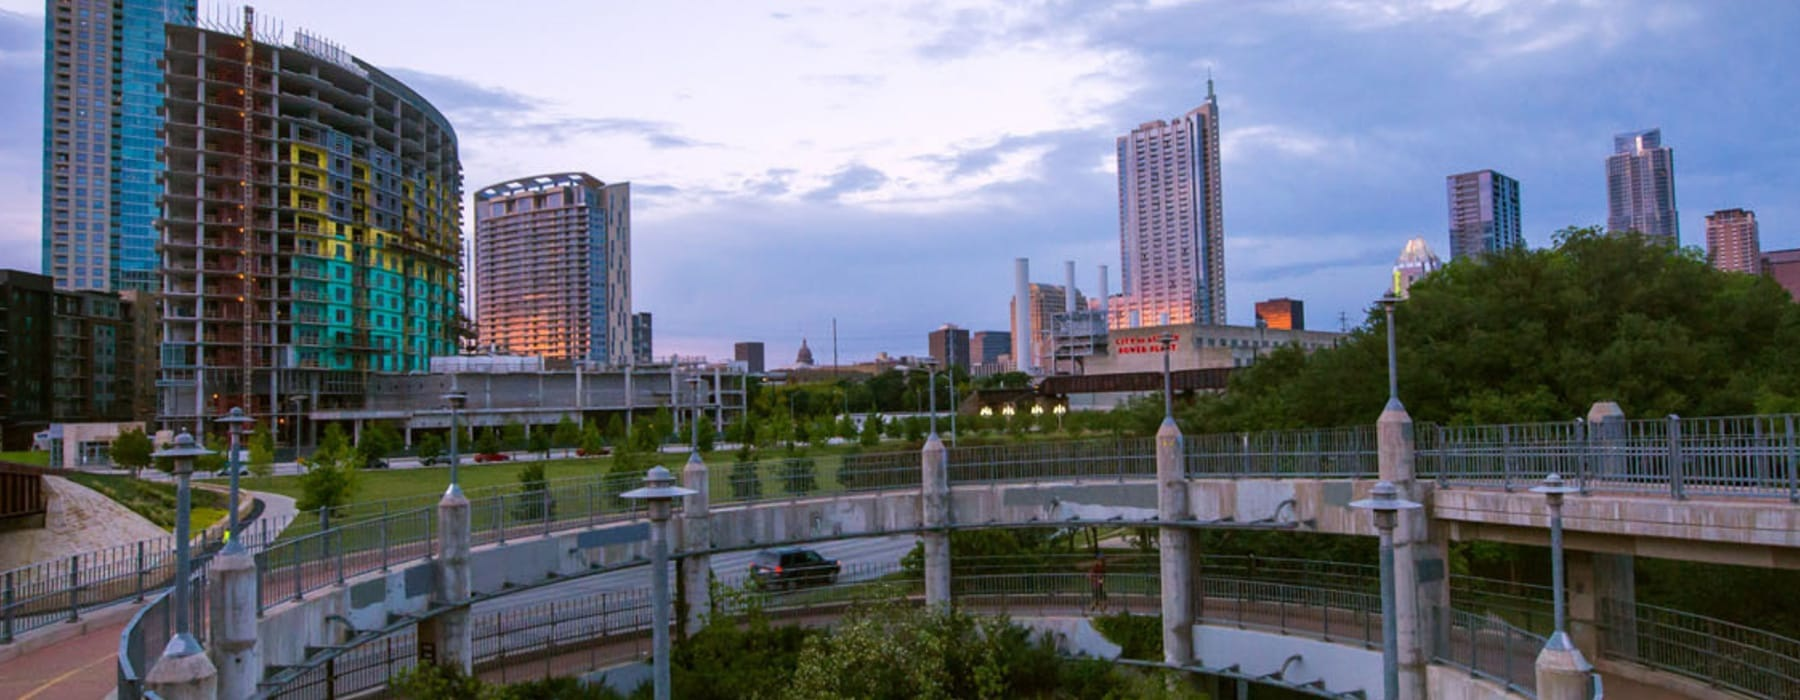 wide view of downtown Austin's skyline at sunset